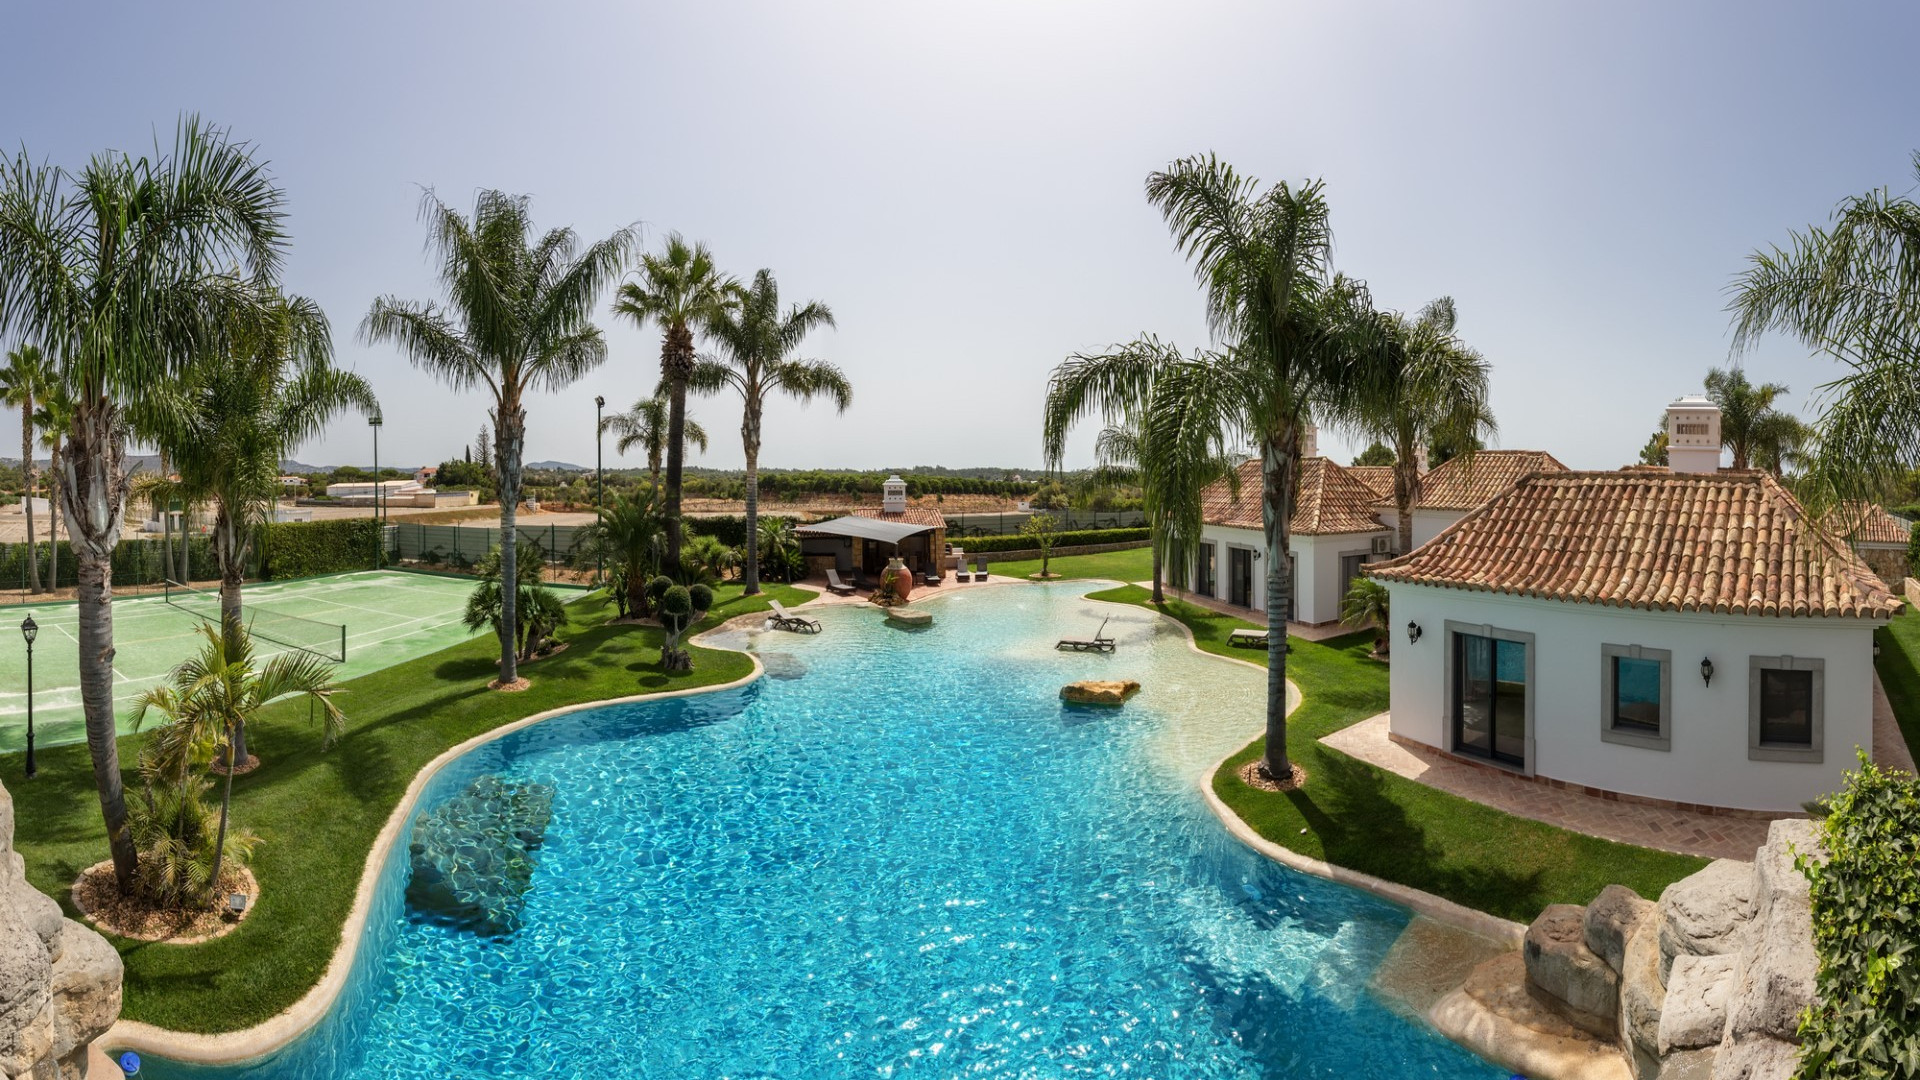 Luxury 4 Bedroom Villa | Quinta do Lago | Private Pool, Childrens Pool, Water Fall & Tennis Court